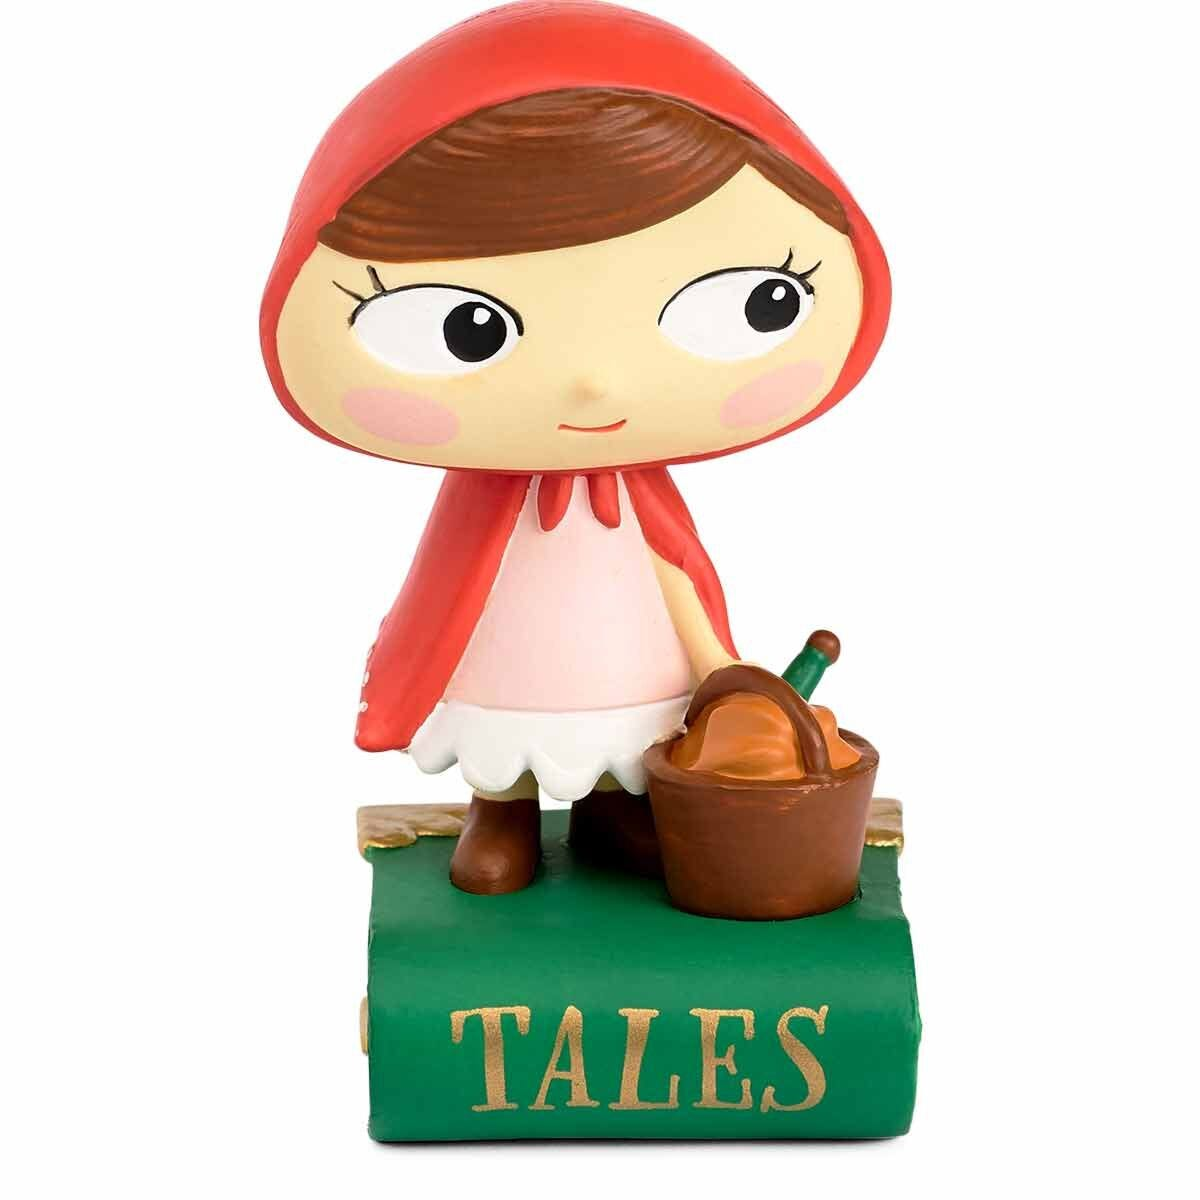 Little Red Riding Hood and Other Fairytales Tonies Content